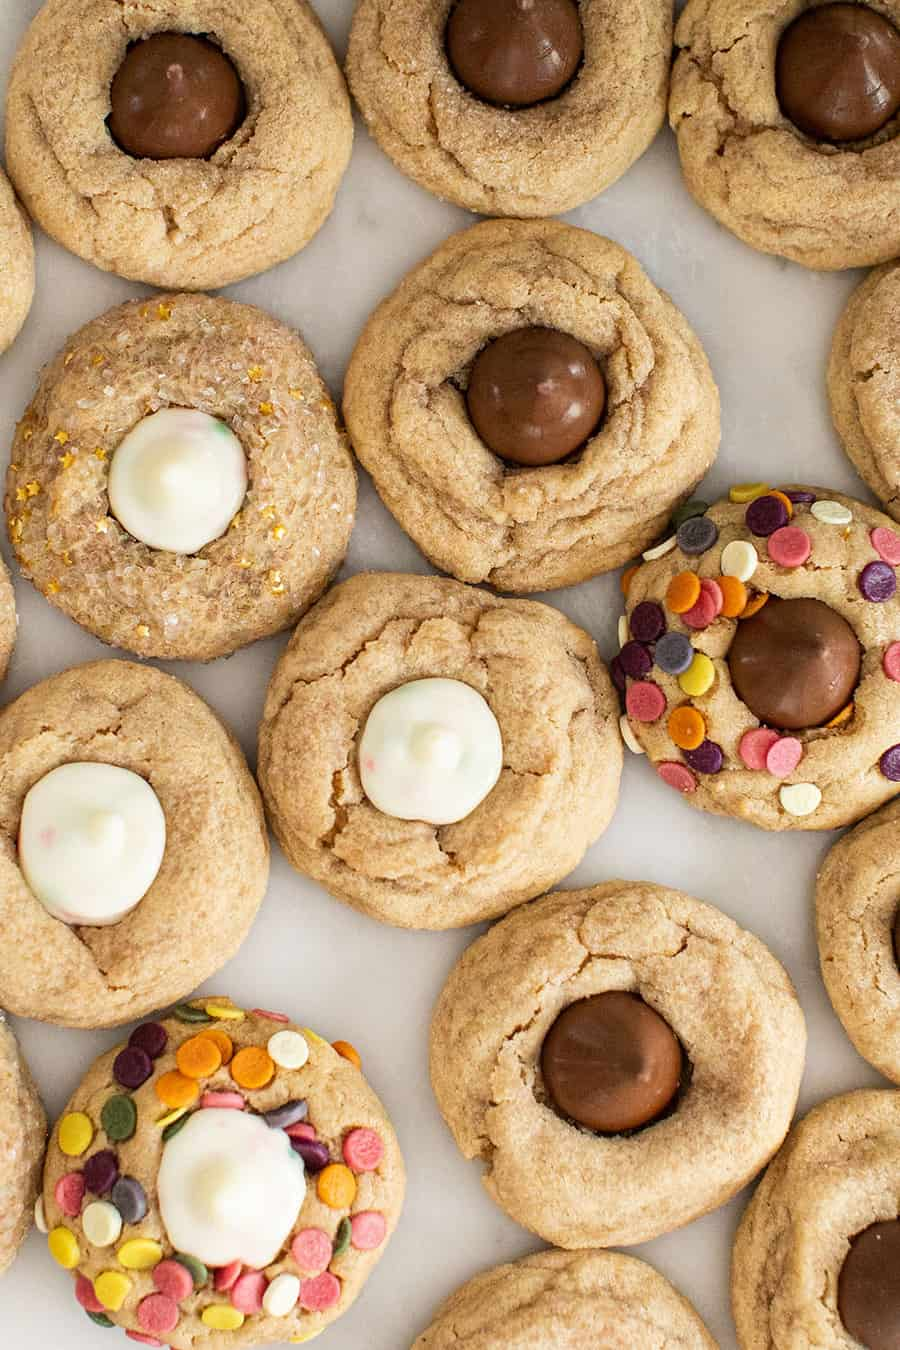 Peanut butter blossom cookies with different flavored Hershey kisses